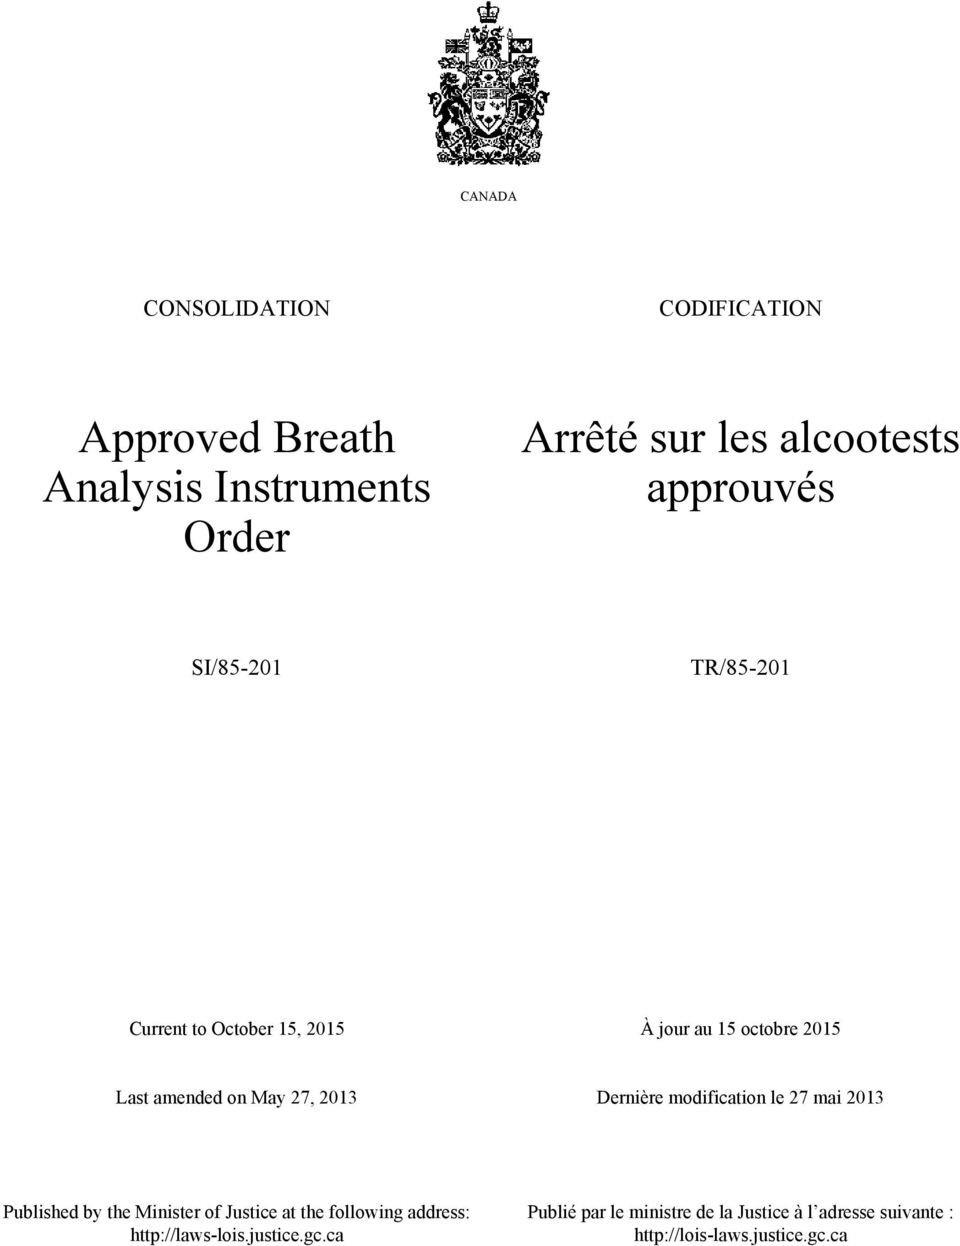 2013 Dernière modification le 27 mai 2013 Published by the Minister of Justice at the following address: